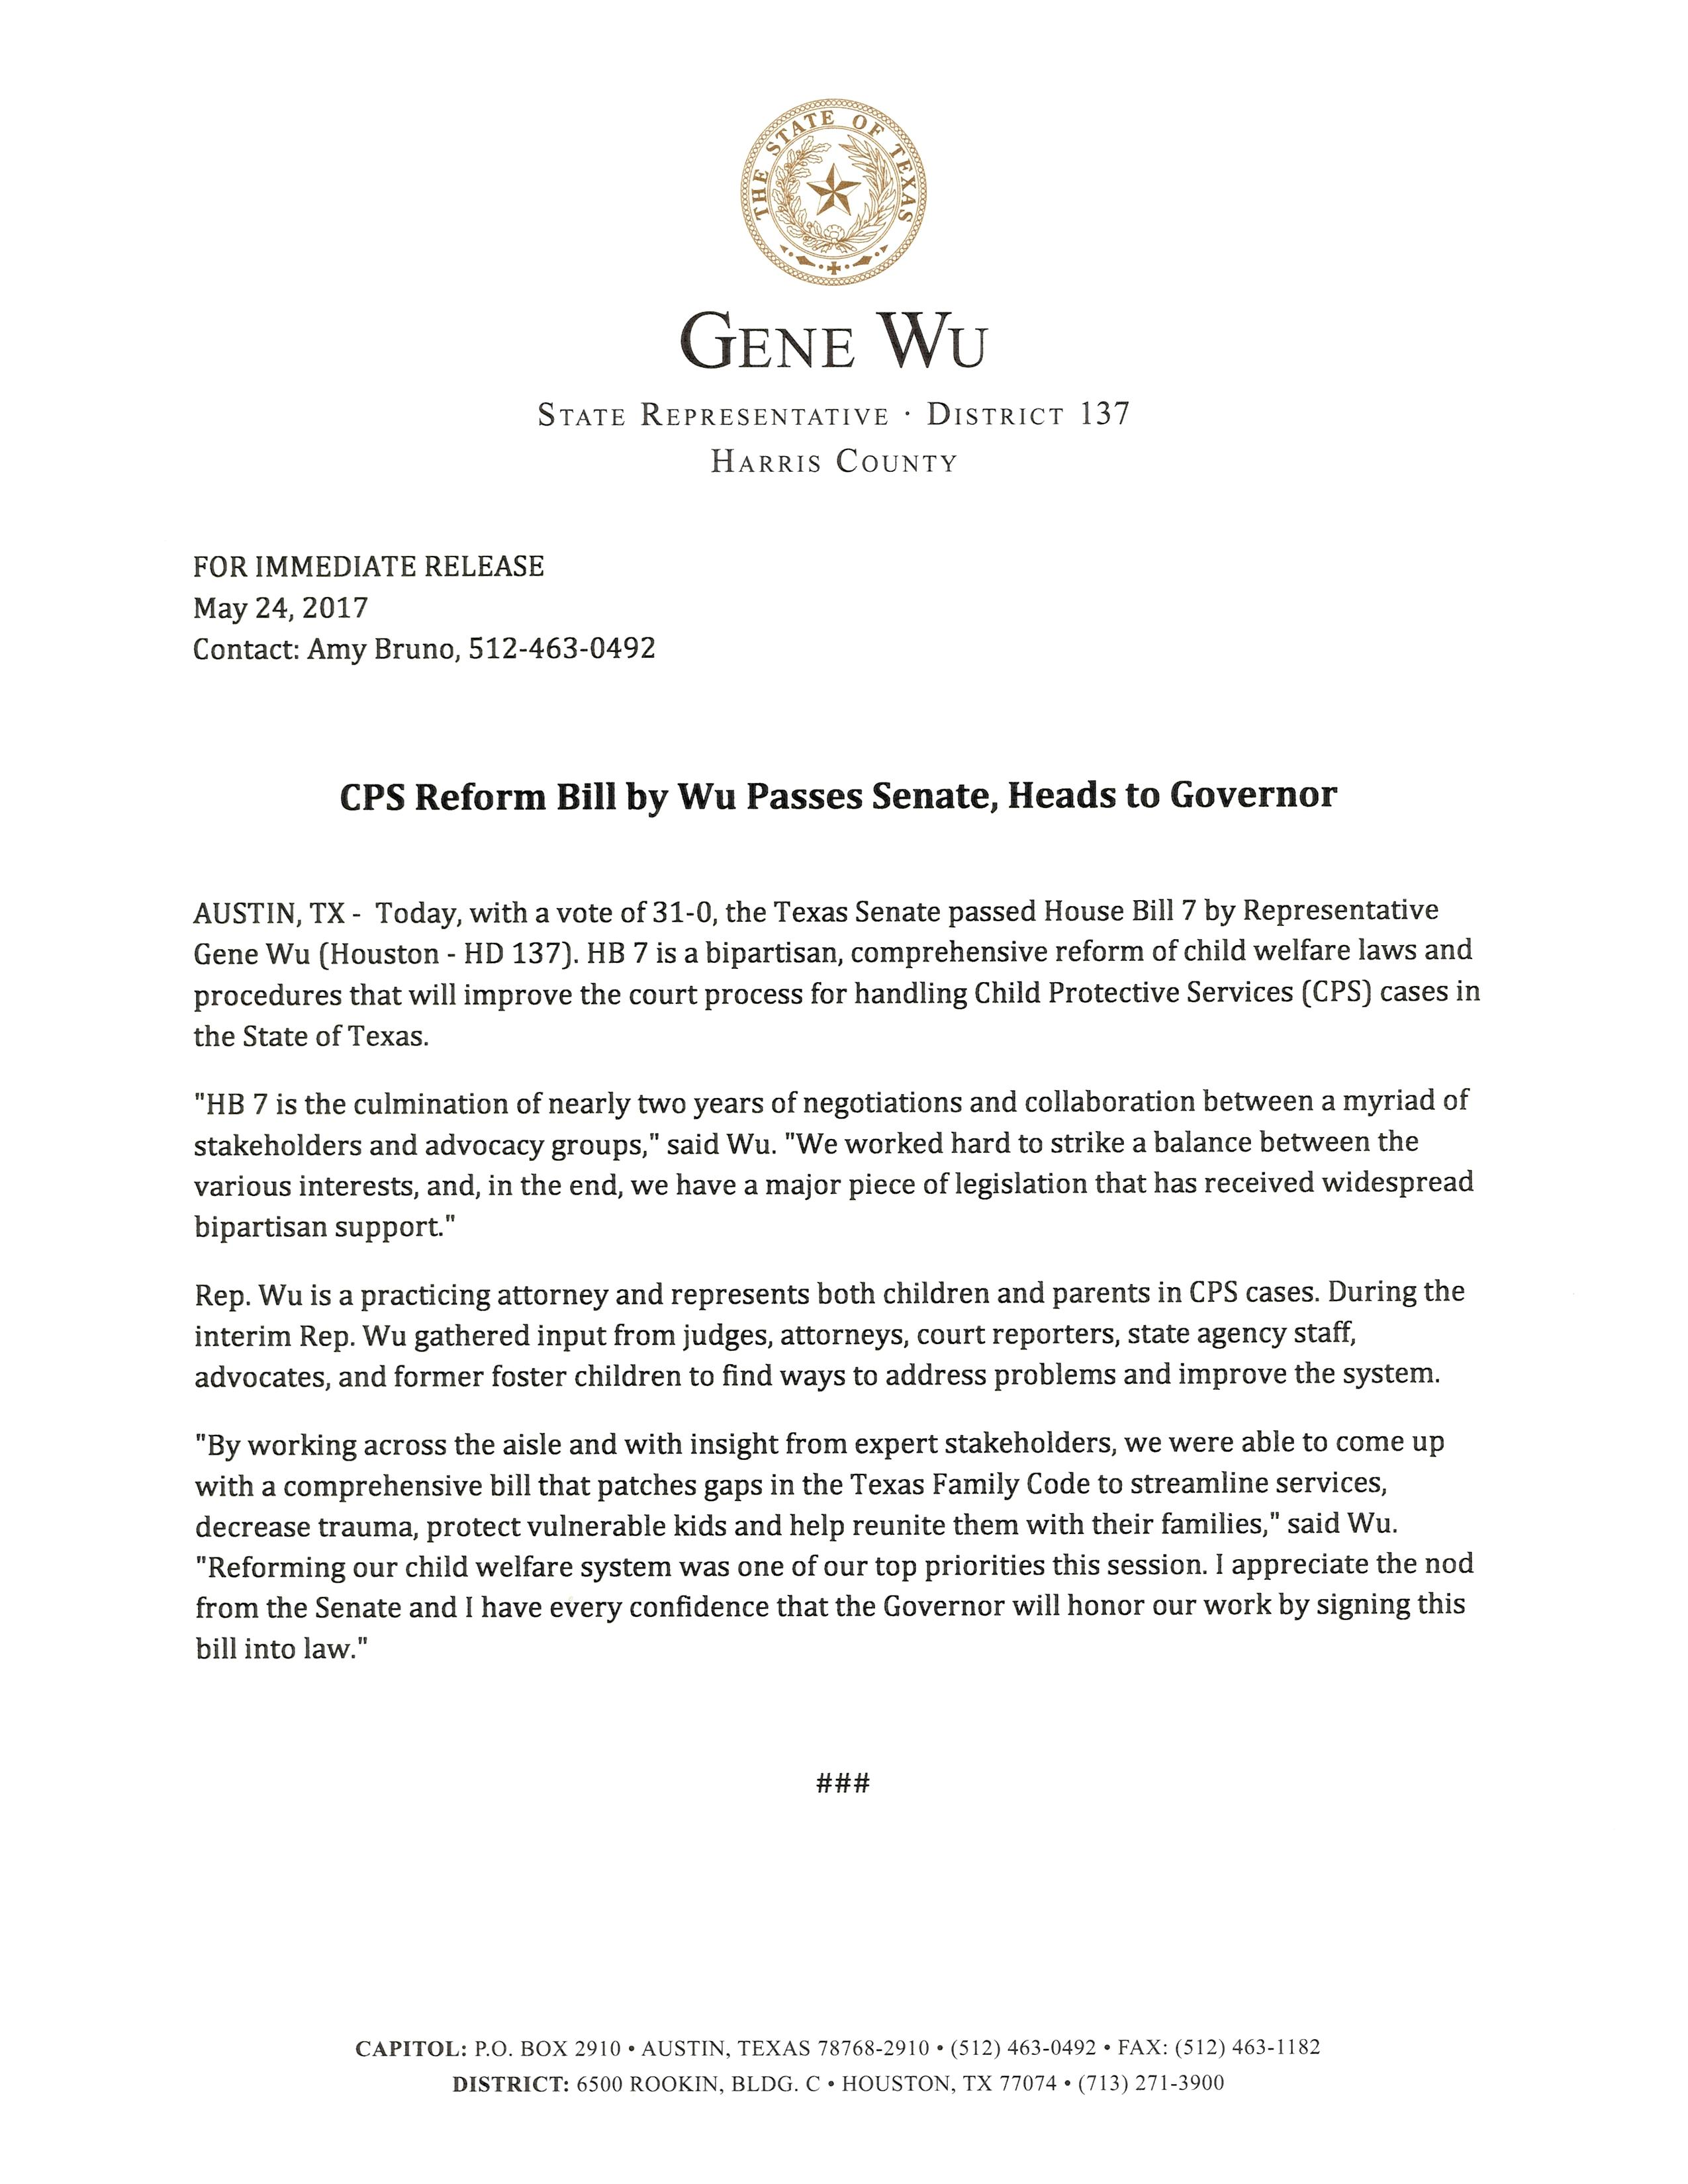 Press Release: CPS Reform Bill by Wu Passes Senate, Heads to